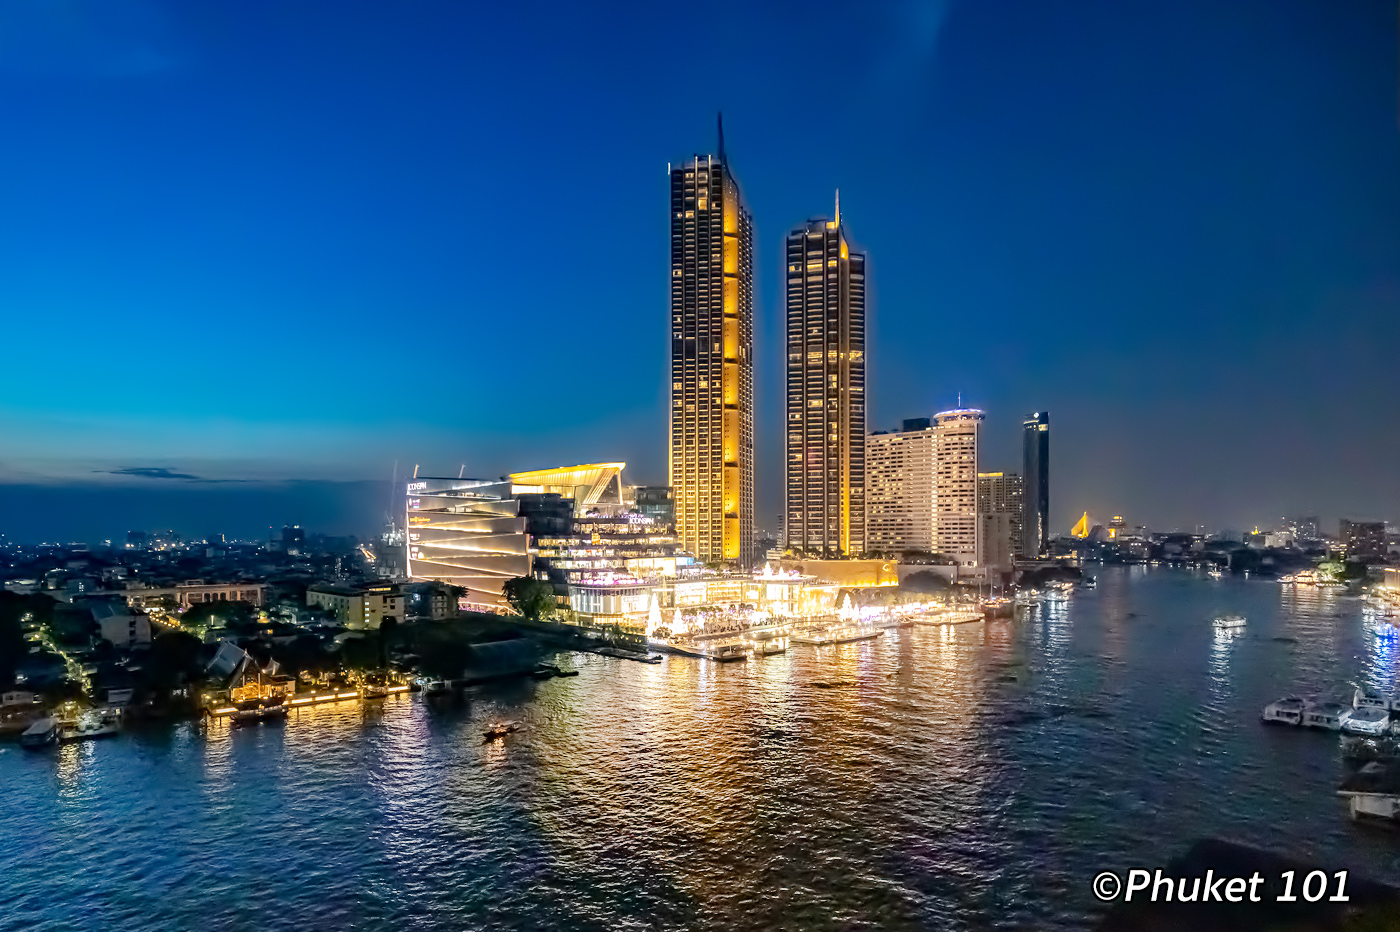 IconSiam Shopping Mall Bangkok